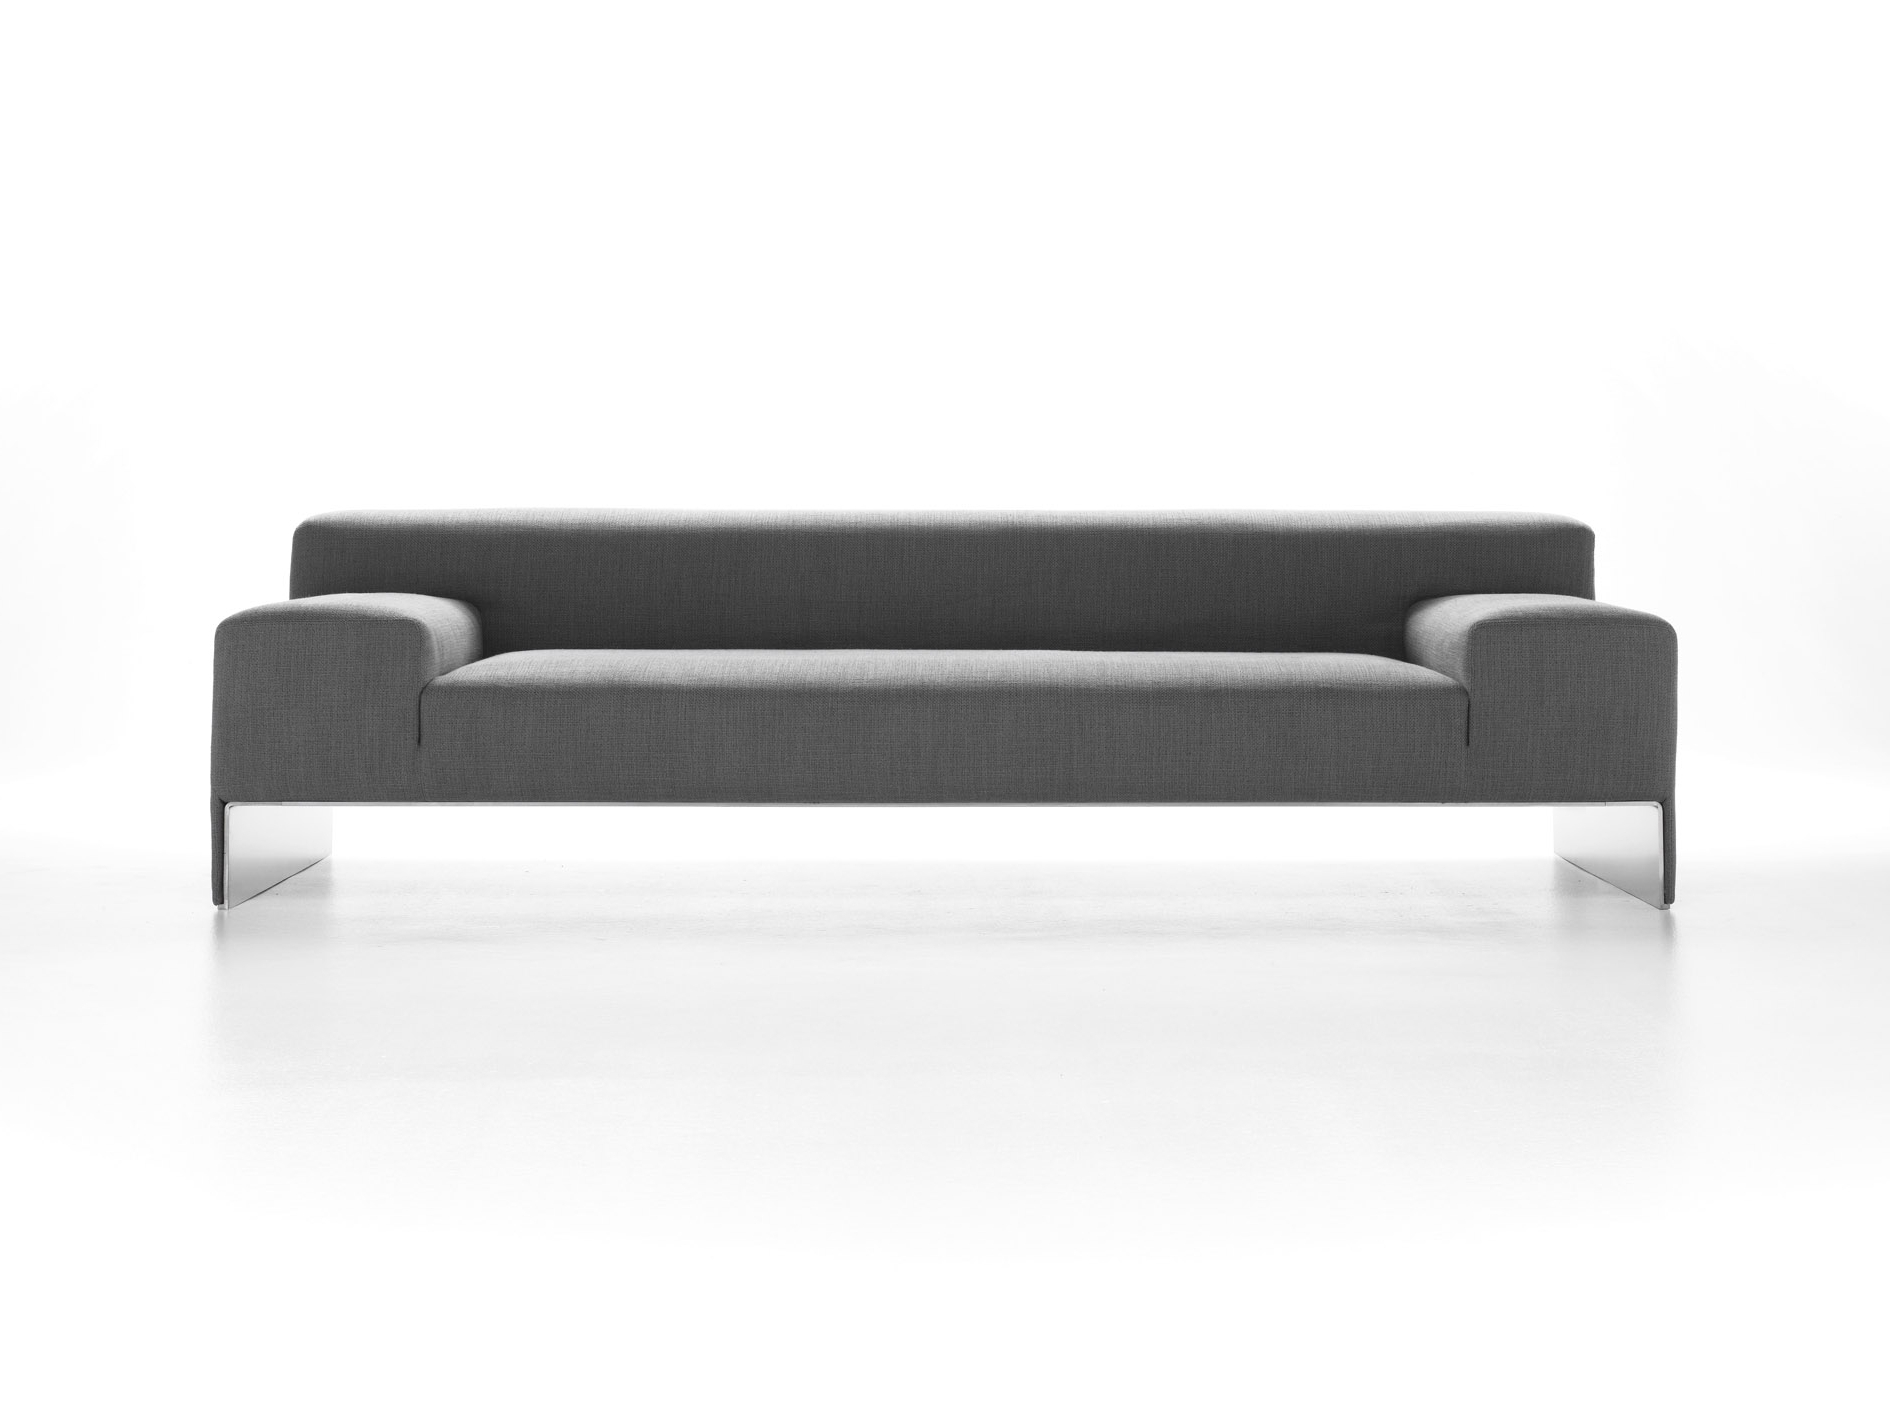 Preferred Long Modern Sofas With Regard To This Peculiar Identity Is Giventhe Thin Arch Shaped Frame From (View 2 of 20)